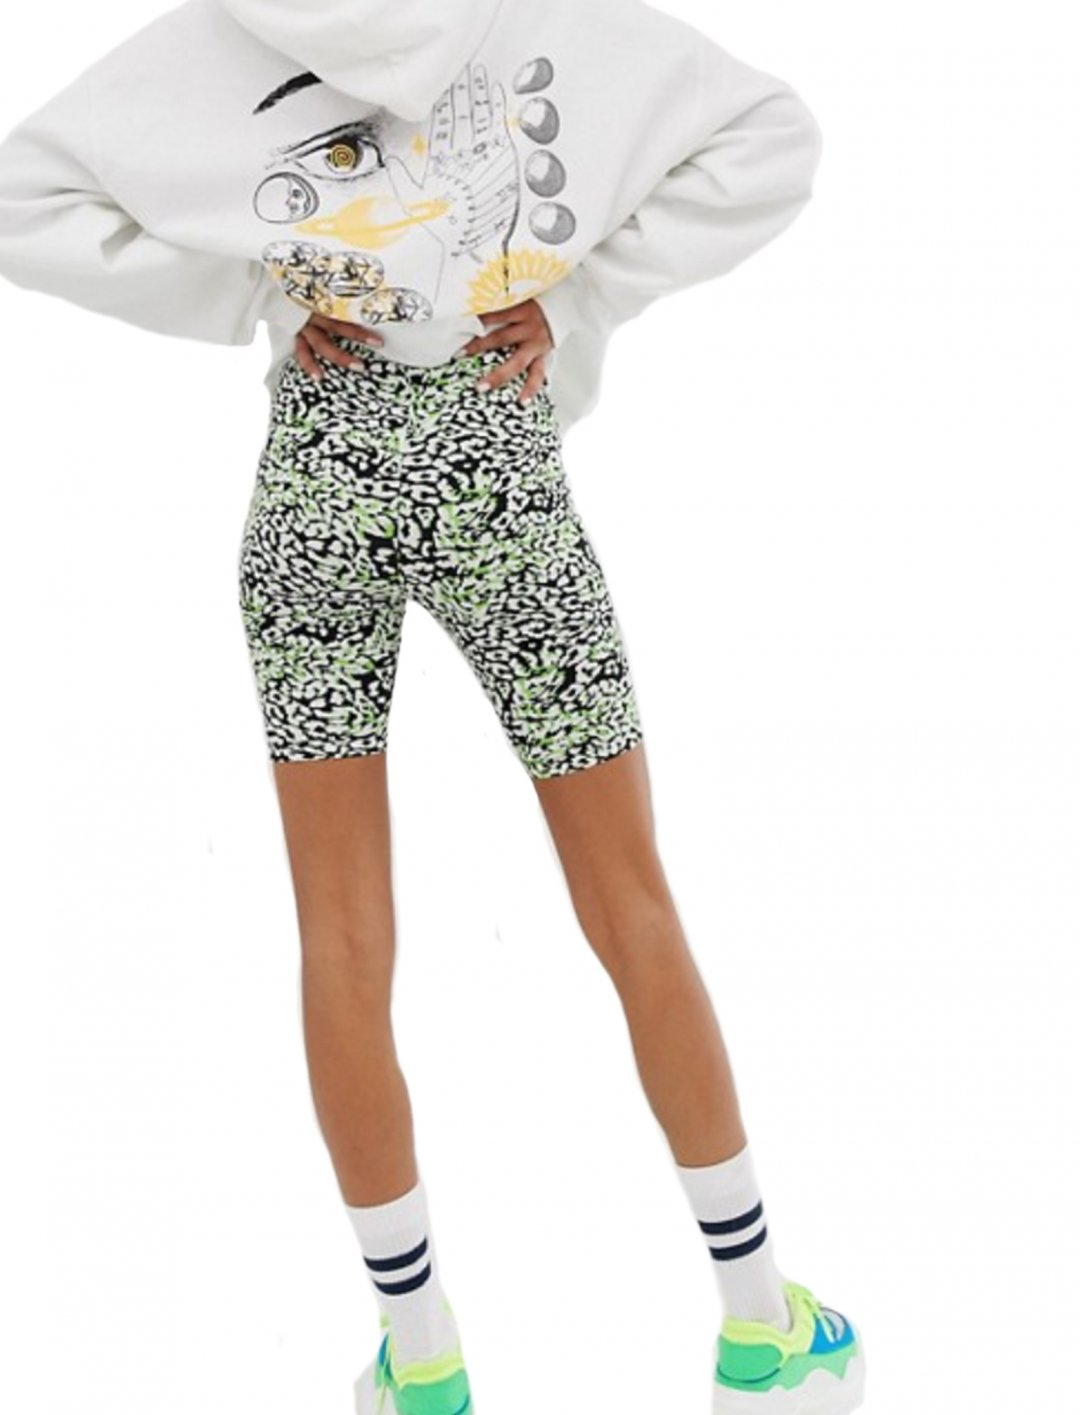 Mahalia's Cycling Shorts Clothing ASOS DESIGN